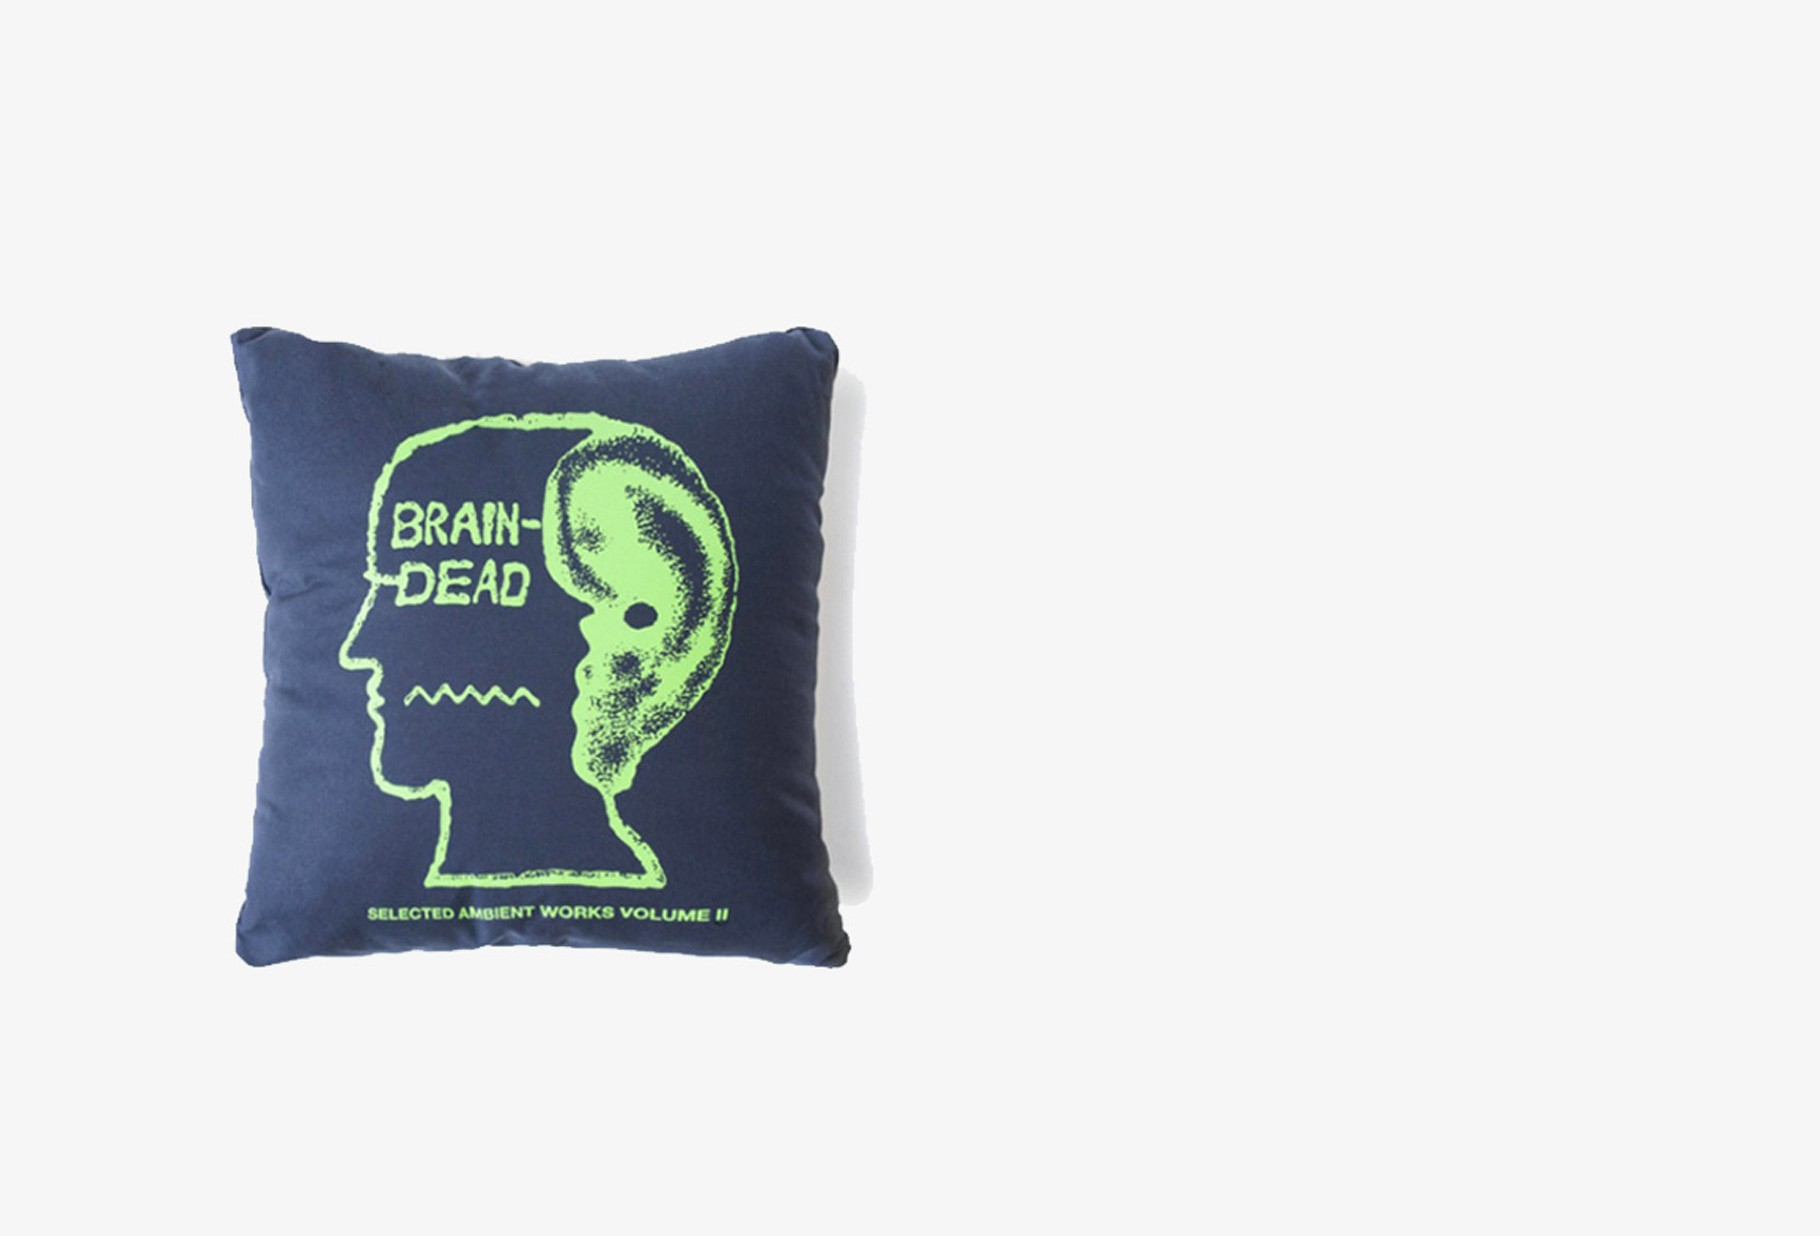 BRAIN DEAD / Bd ambient pillow Navy